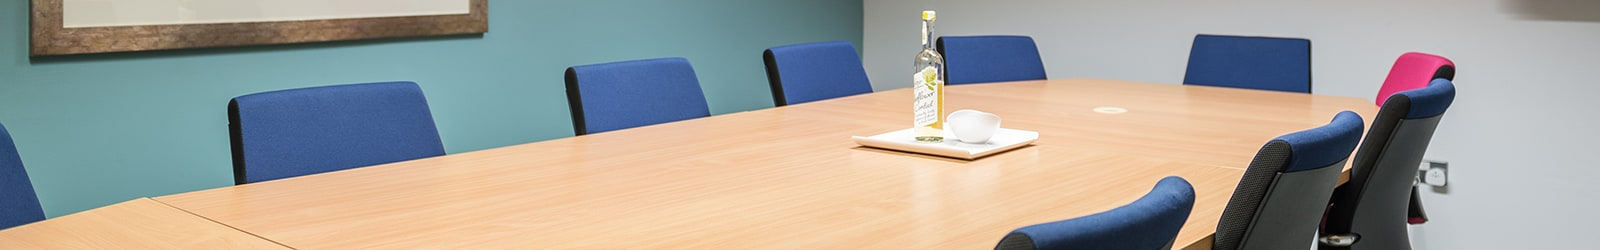 Small Meeting Rooms Banner 2